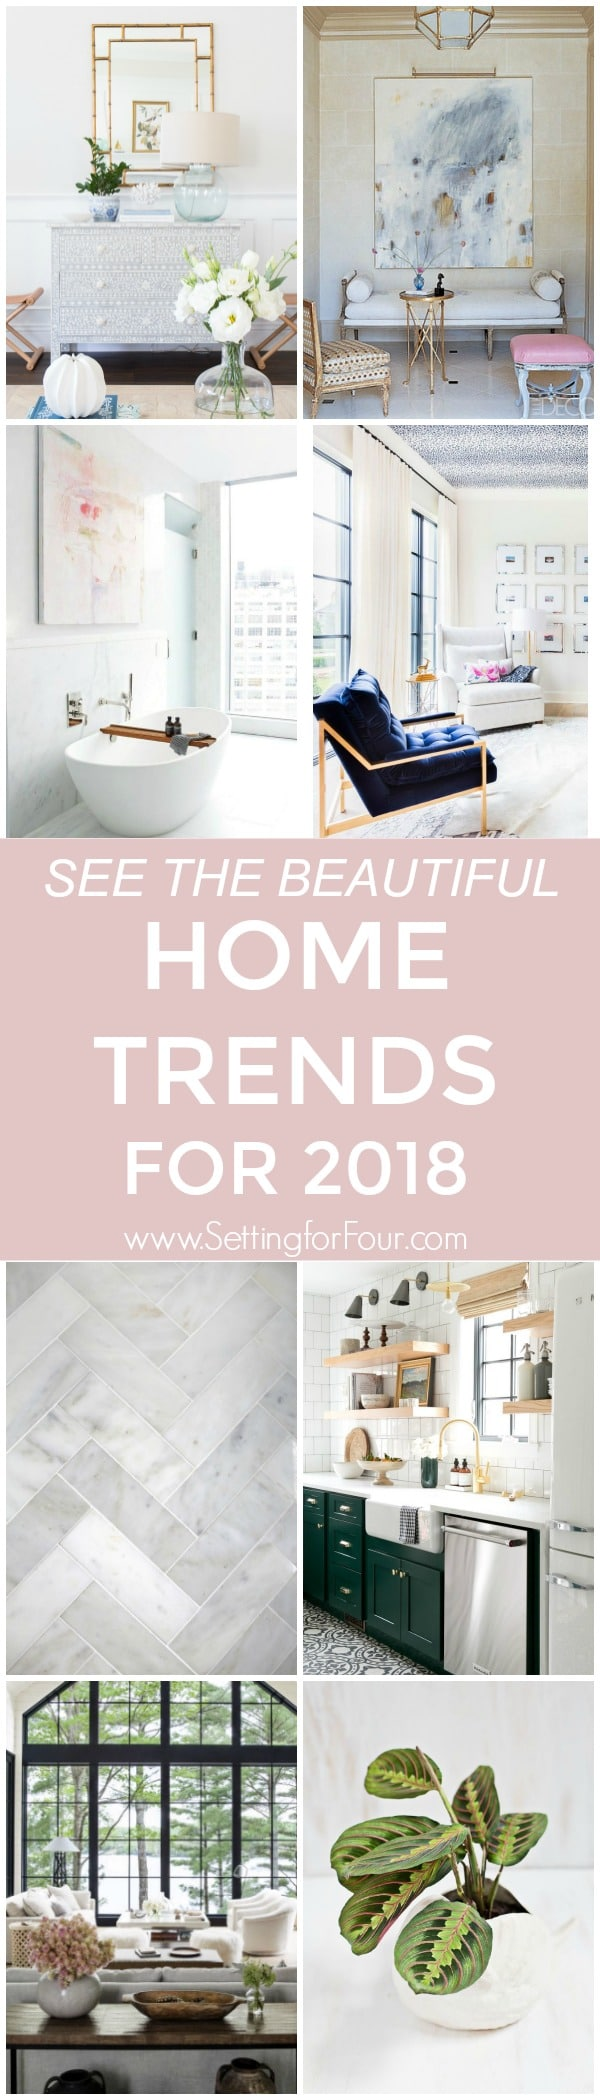 Looking to refresh your home decor or renovate?  Building a new home or just want to tweak your accents? Take a look at the best Home Trends for 2018 in Design and Decor straight from the trend list on Pinterest! Pinterest has released it's fourth annual top 100 trends for 2018, and the decor list is defined by both bold color and neutral minimalistic details.